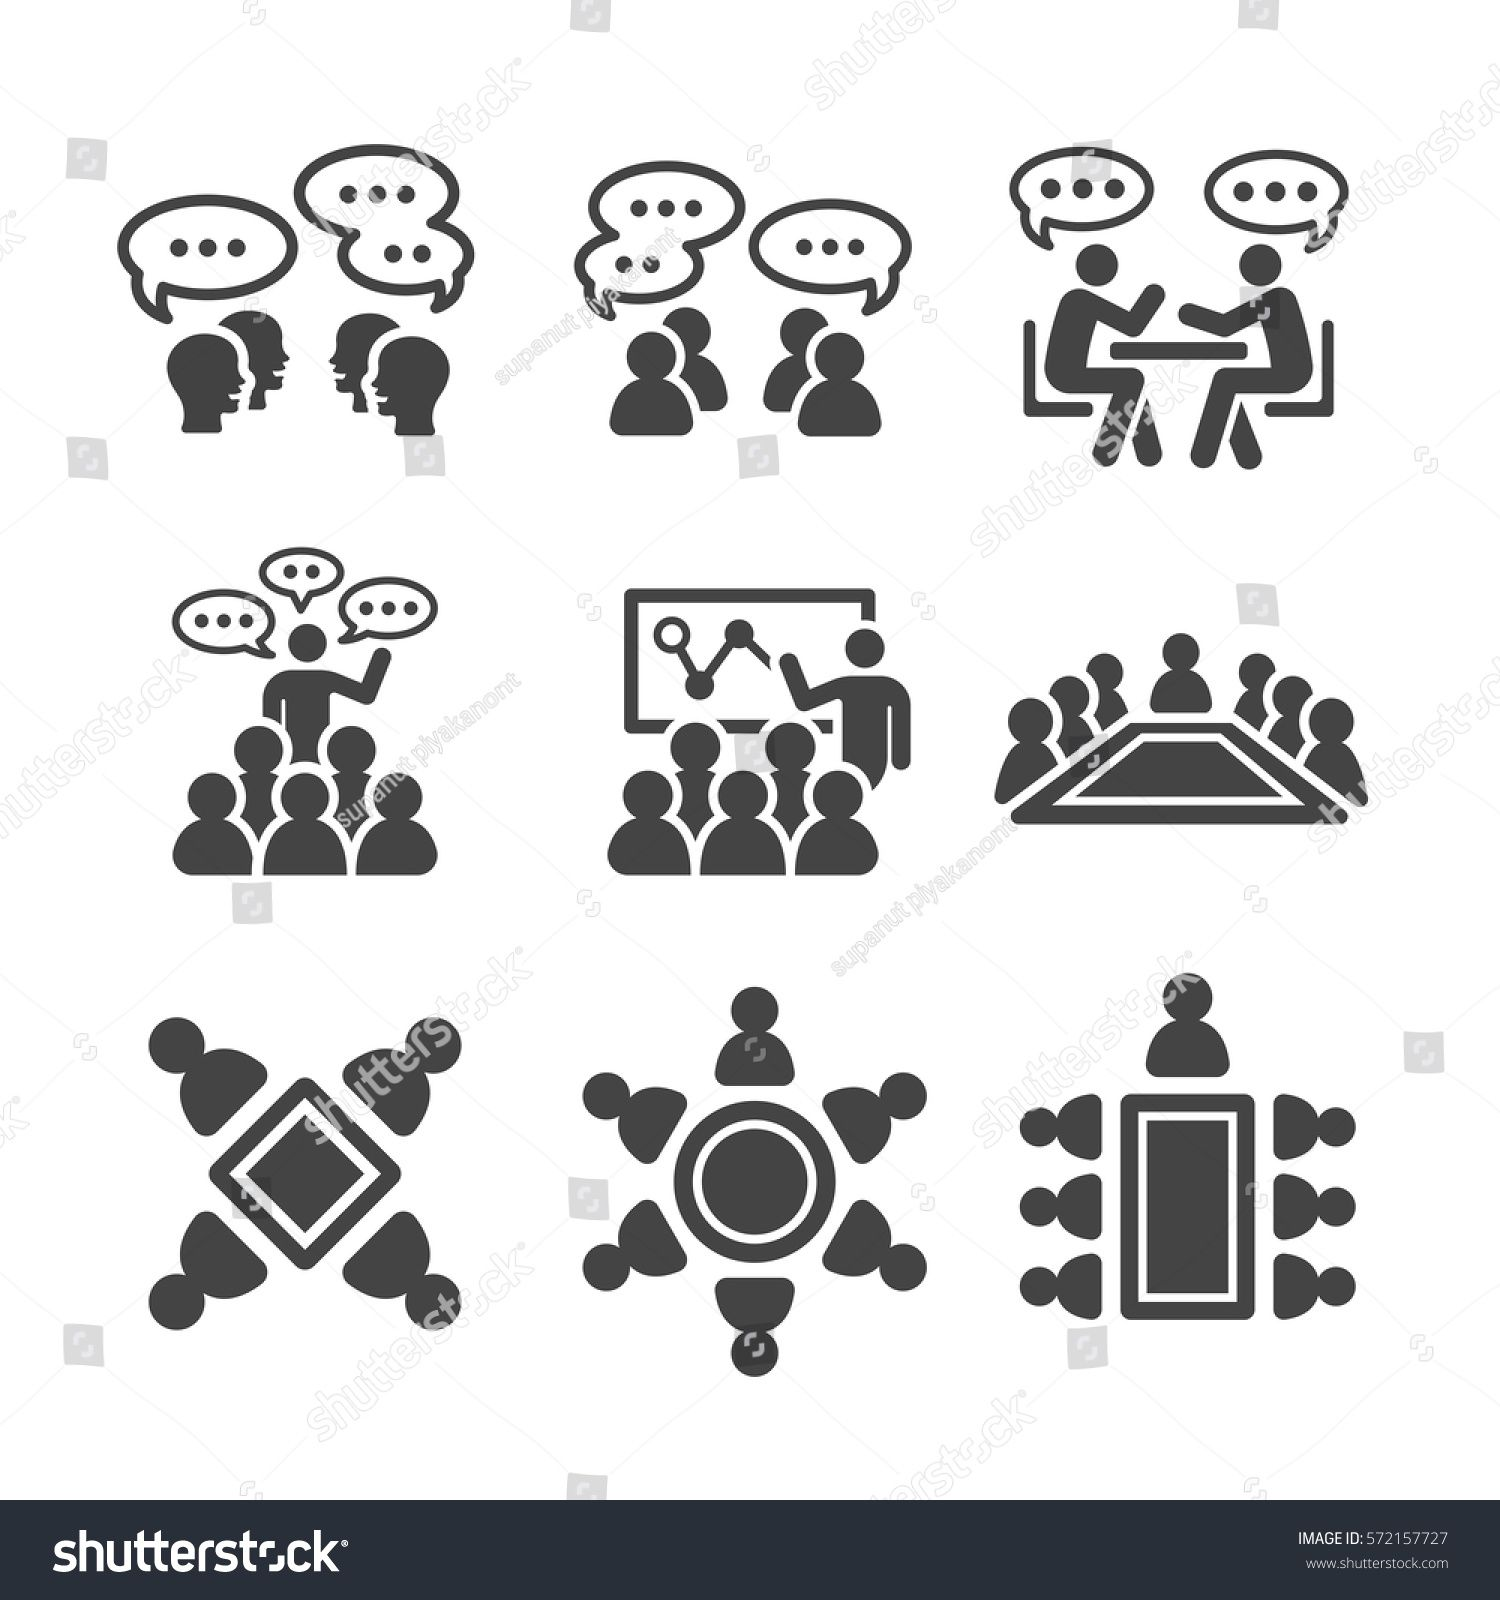 Conference Icon Ad Ad Conference Icon Letter Logo Inspiration Conference Logo Note Doodles